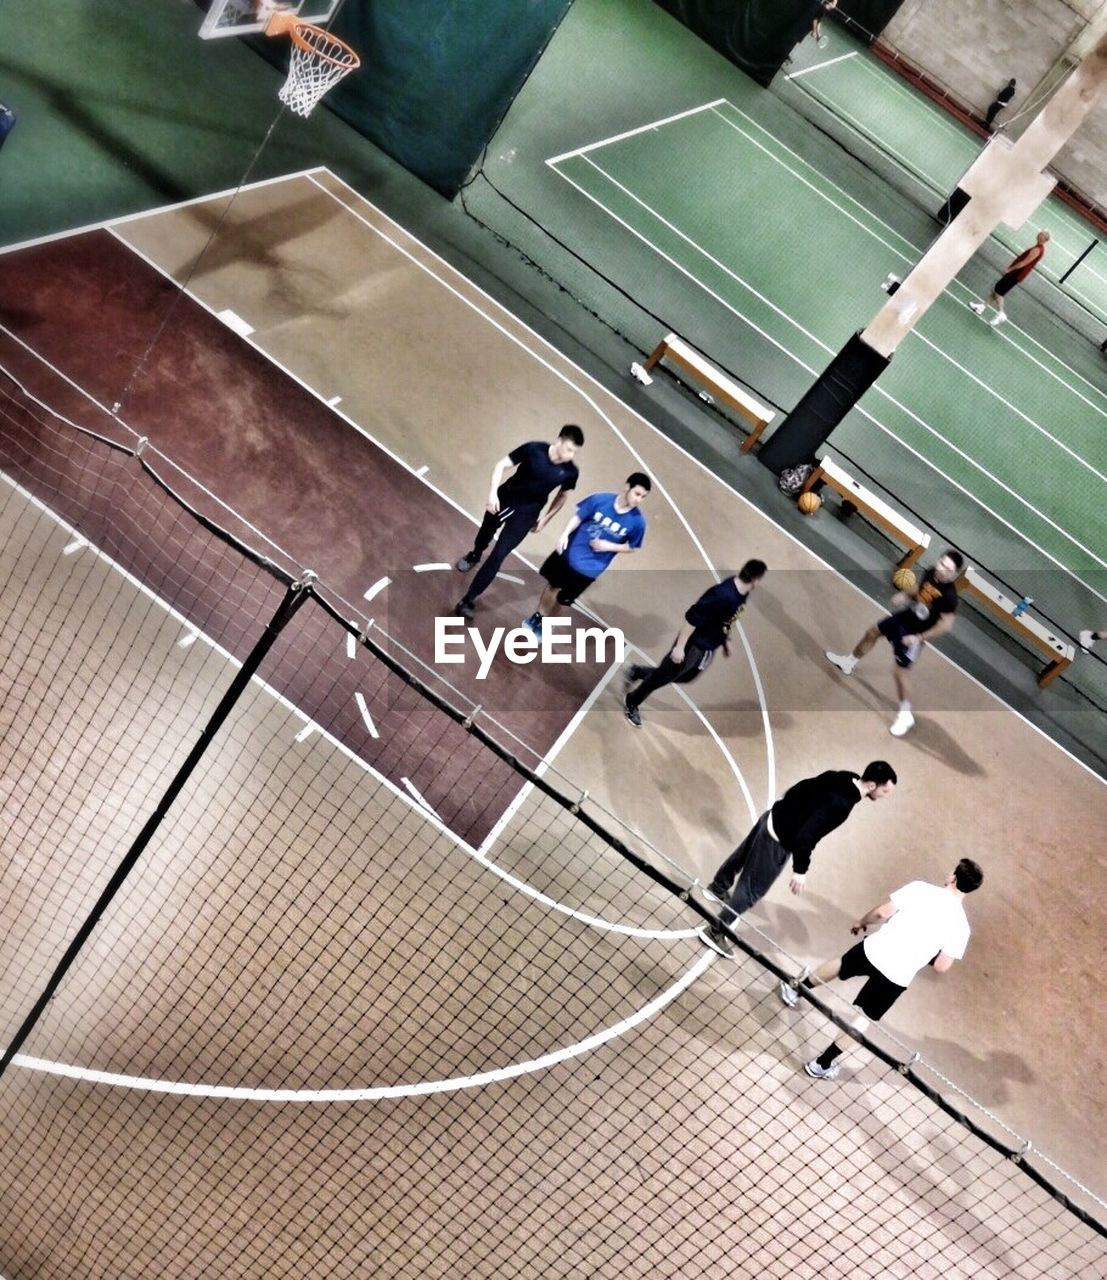 sport, high angle view, competition, playing, competitive sport, men, sportsman, sports clothing, real people, sports uniform, day, togetherness, teamwork, indoors, sports team, athlete, court, only men, people